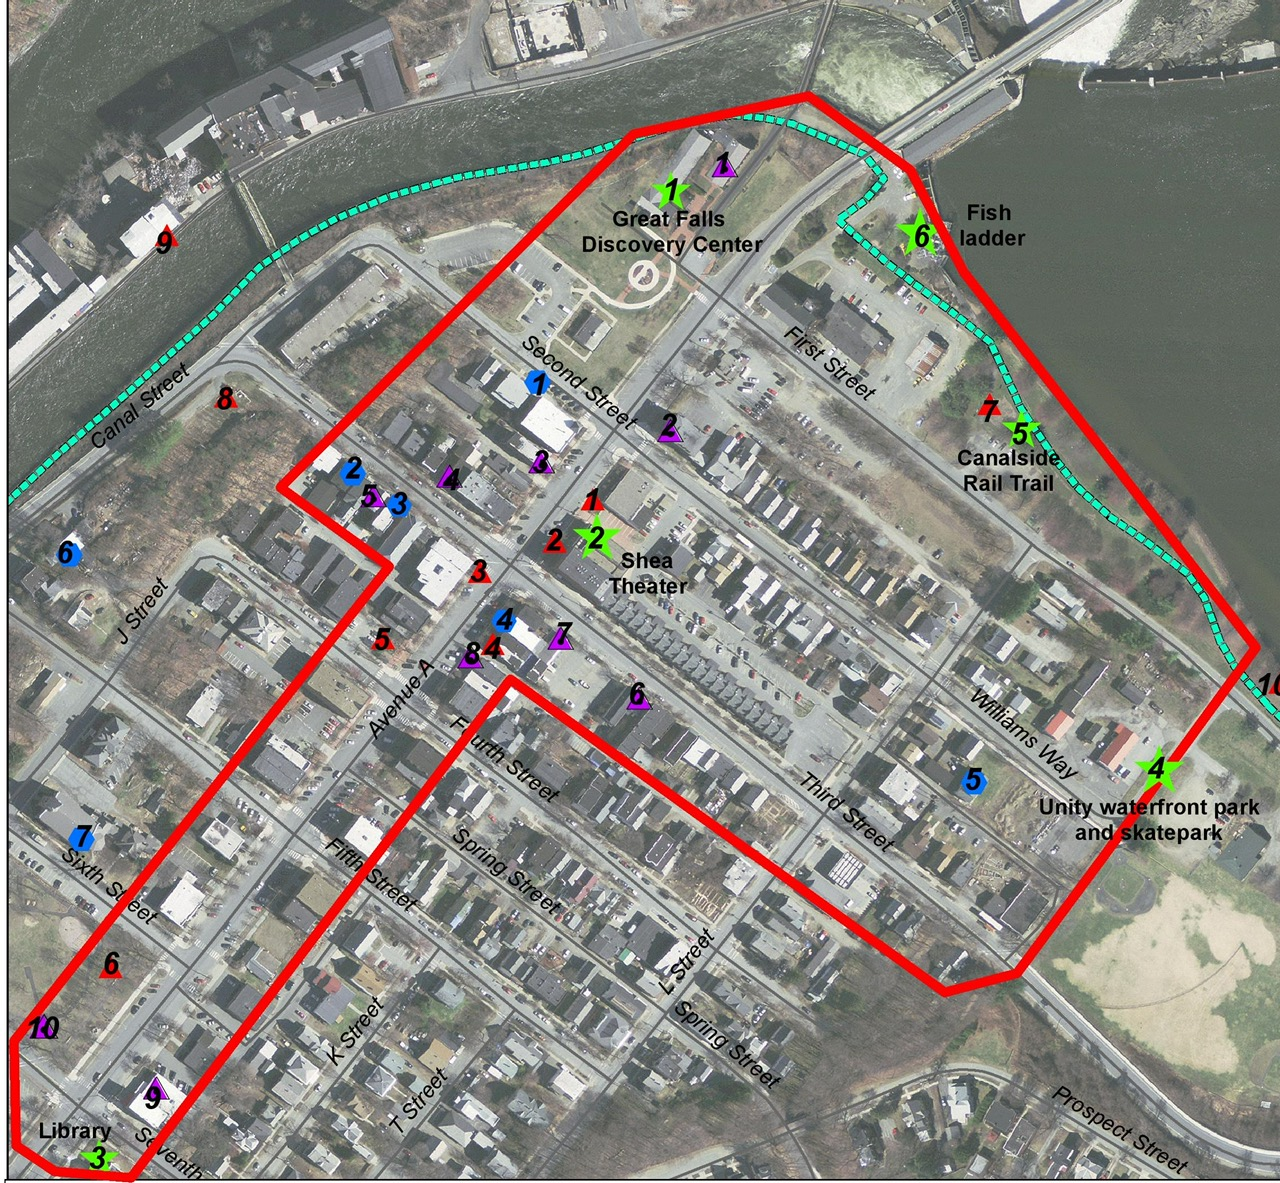 Map of the Turners Falls Cultural District location